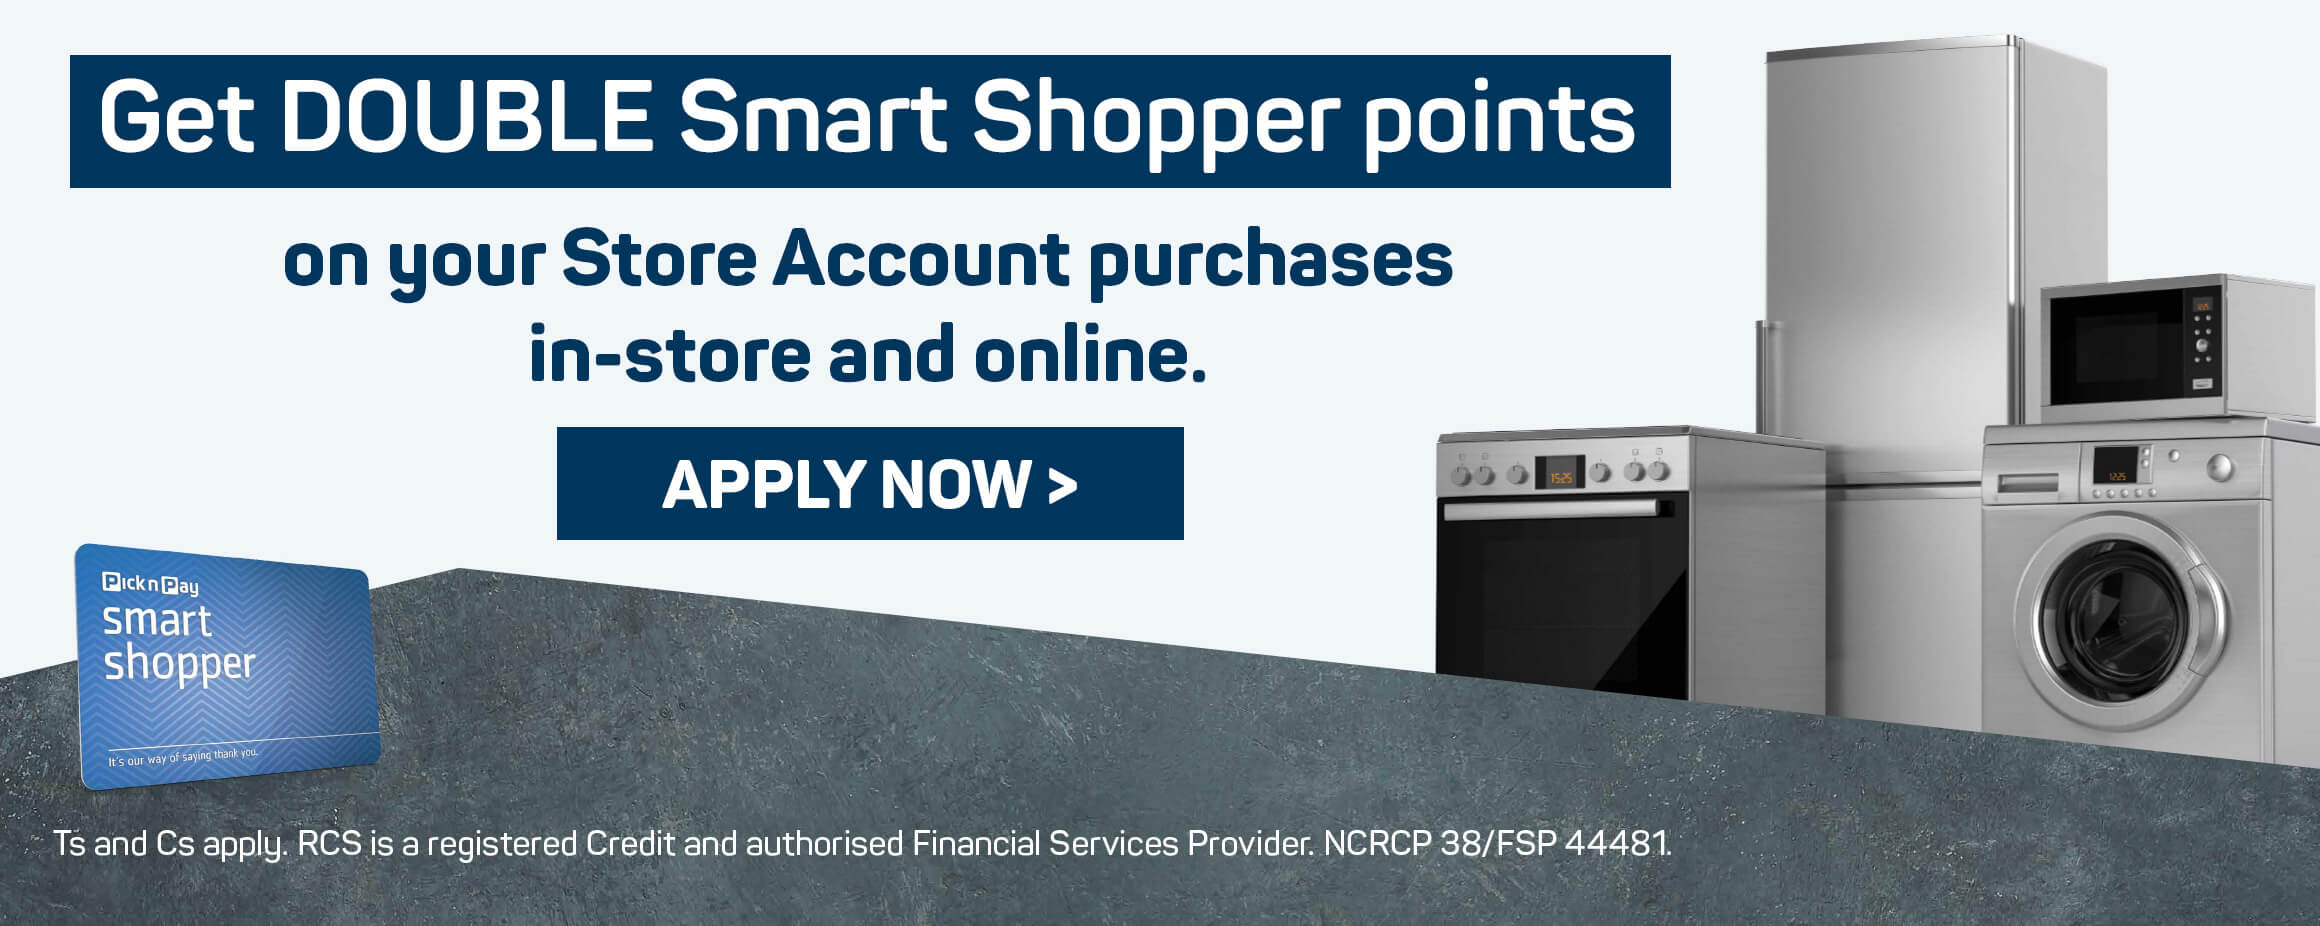 Get DOUBLE Smart Shopper points  on your Store Account purchases in-store and online. Apply now >